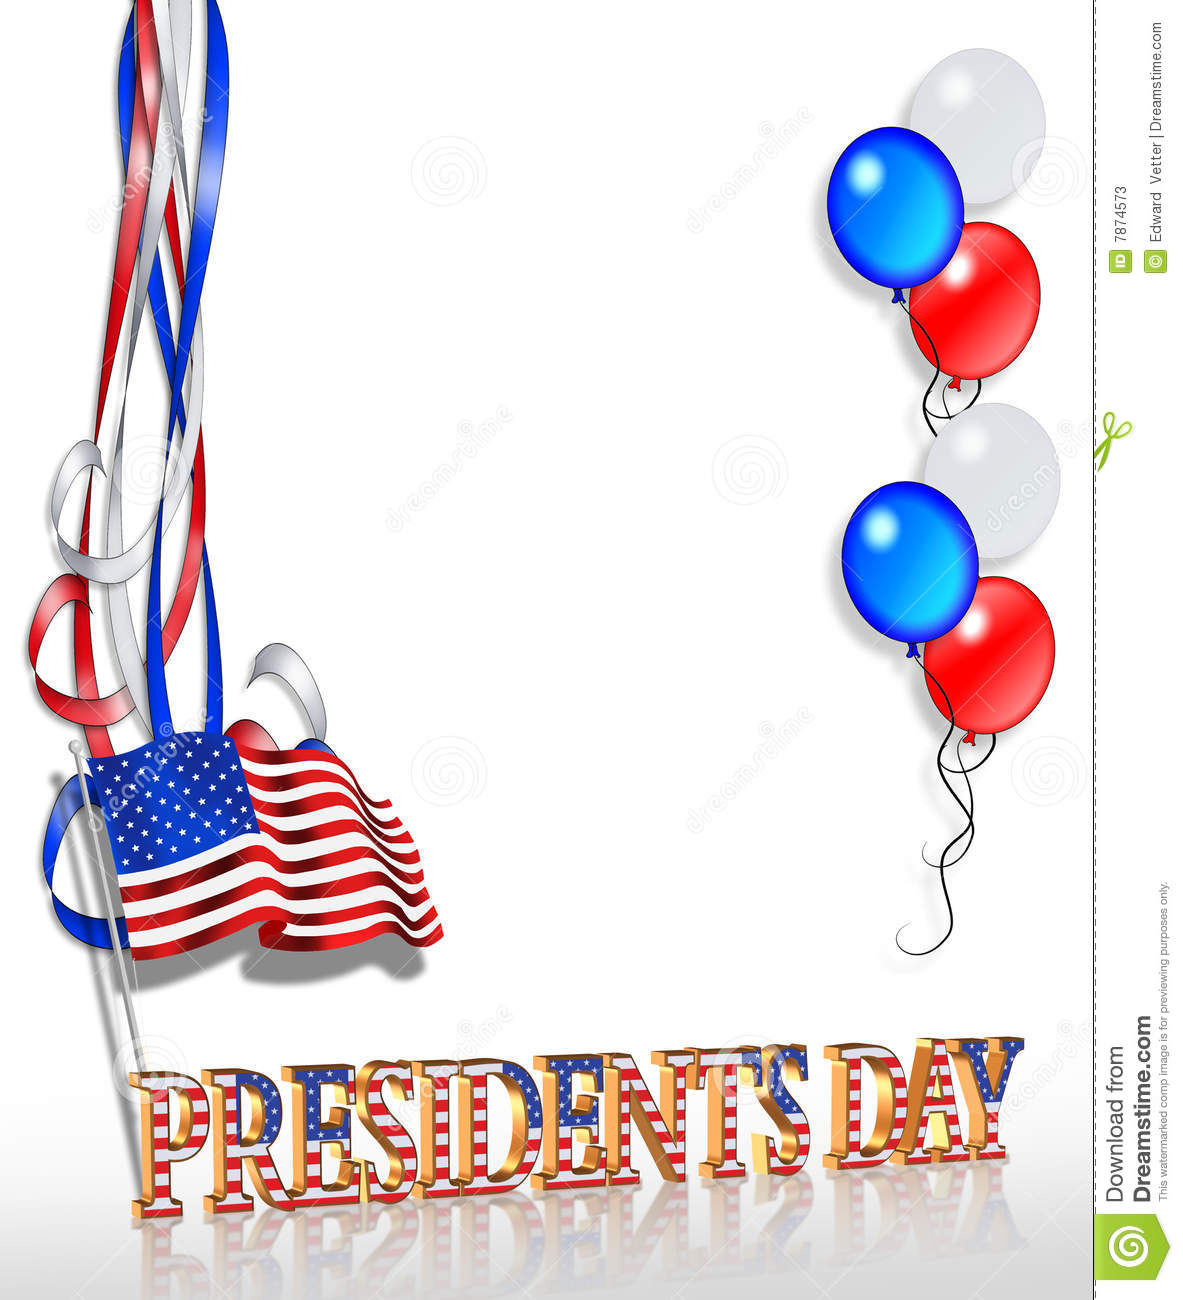 Extended Presidents Day: Presidents Day Background 2 Stock Illustration